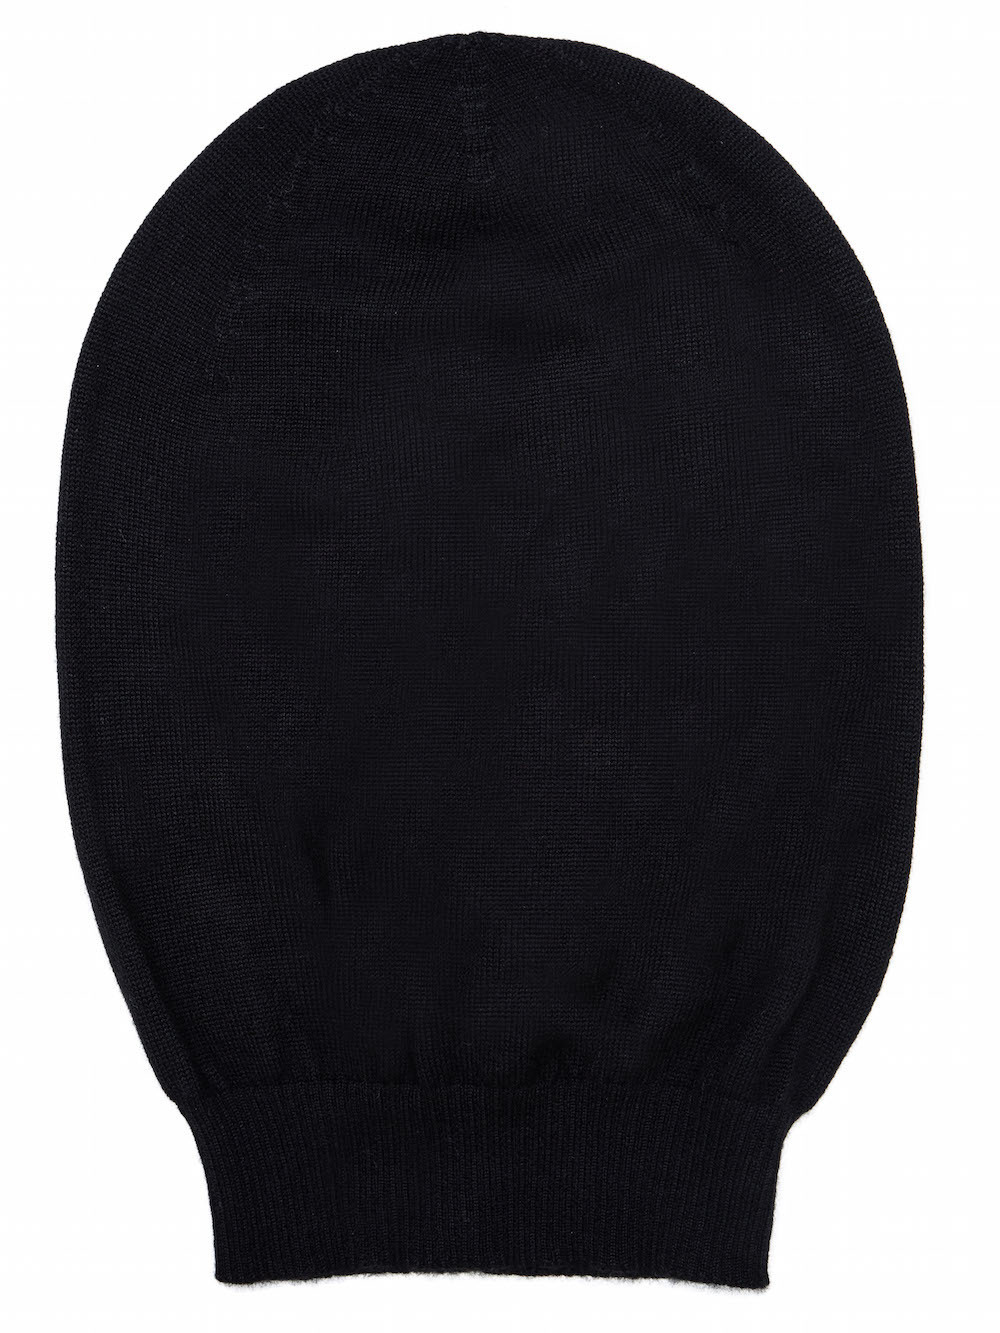 787e8300765 RICK OWENS MEDIUM HAT IN BLACK CASHMERE HAS A SLIGHTLY OVERSIZED FIT AND MORE  VOLUME WHEN